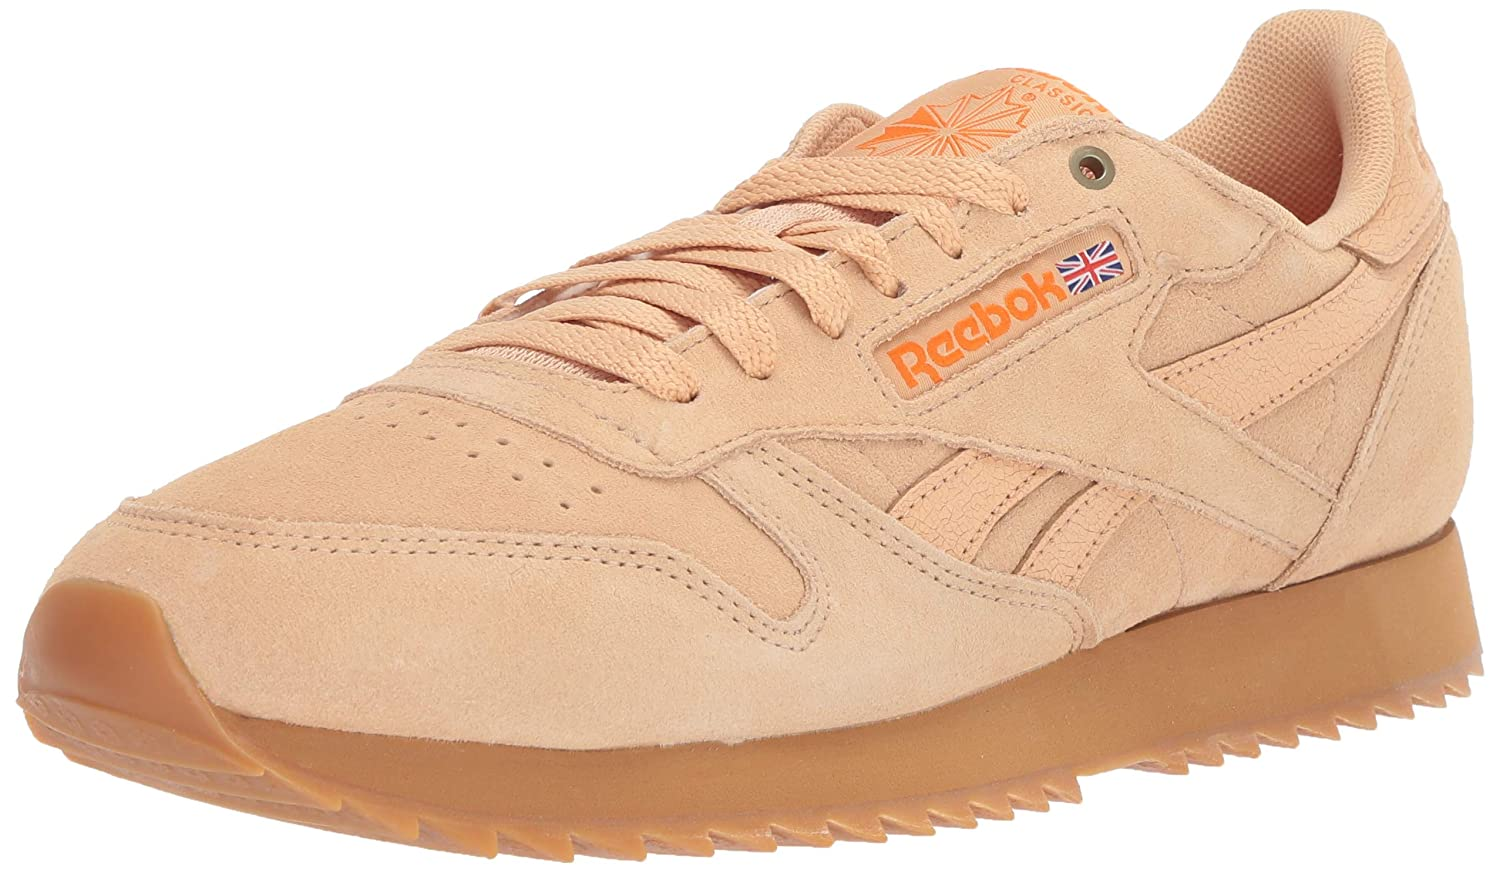 d7249416a4a50 Reebok Men's Classic Leather Sneaker Cappuccino/Pure Orange/Gum 6.5 M US